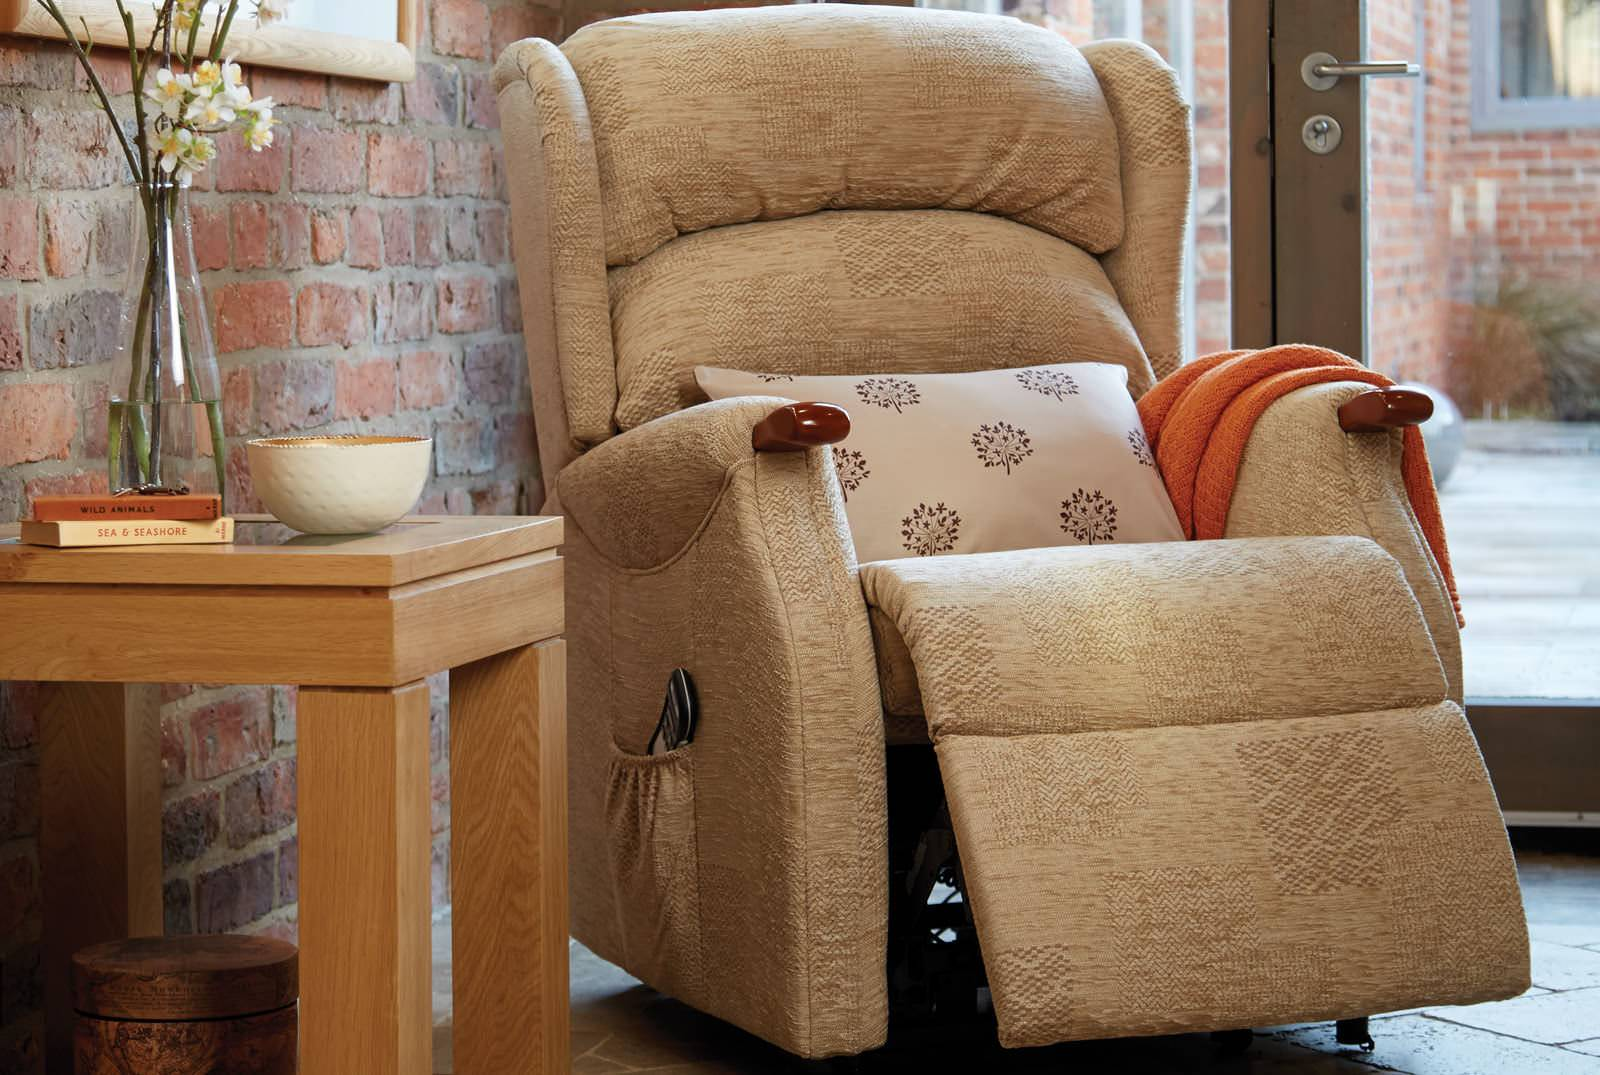 Linton Single Motor Riser Recliner in Patchwork Jute